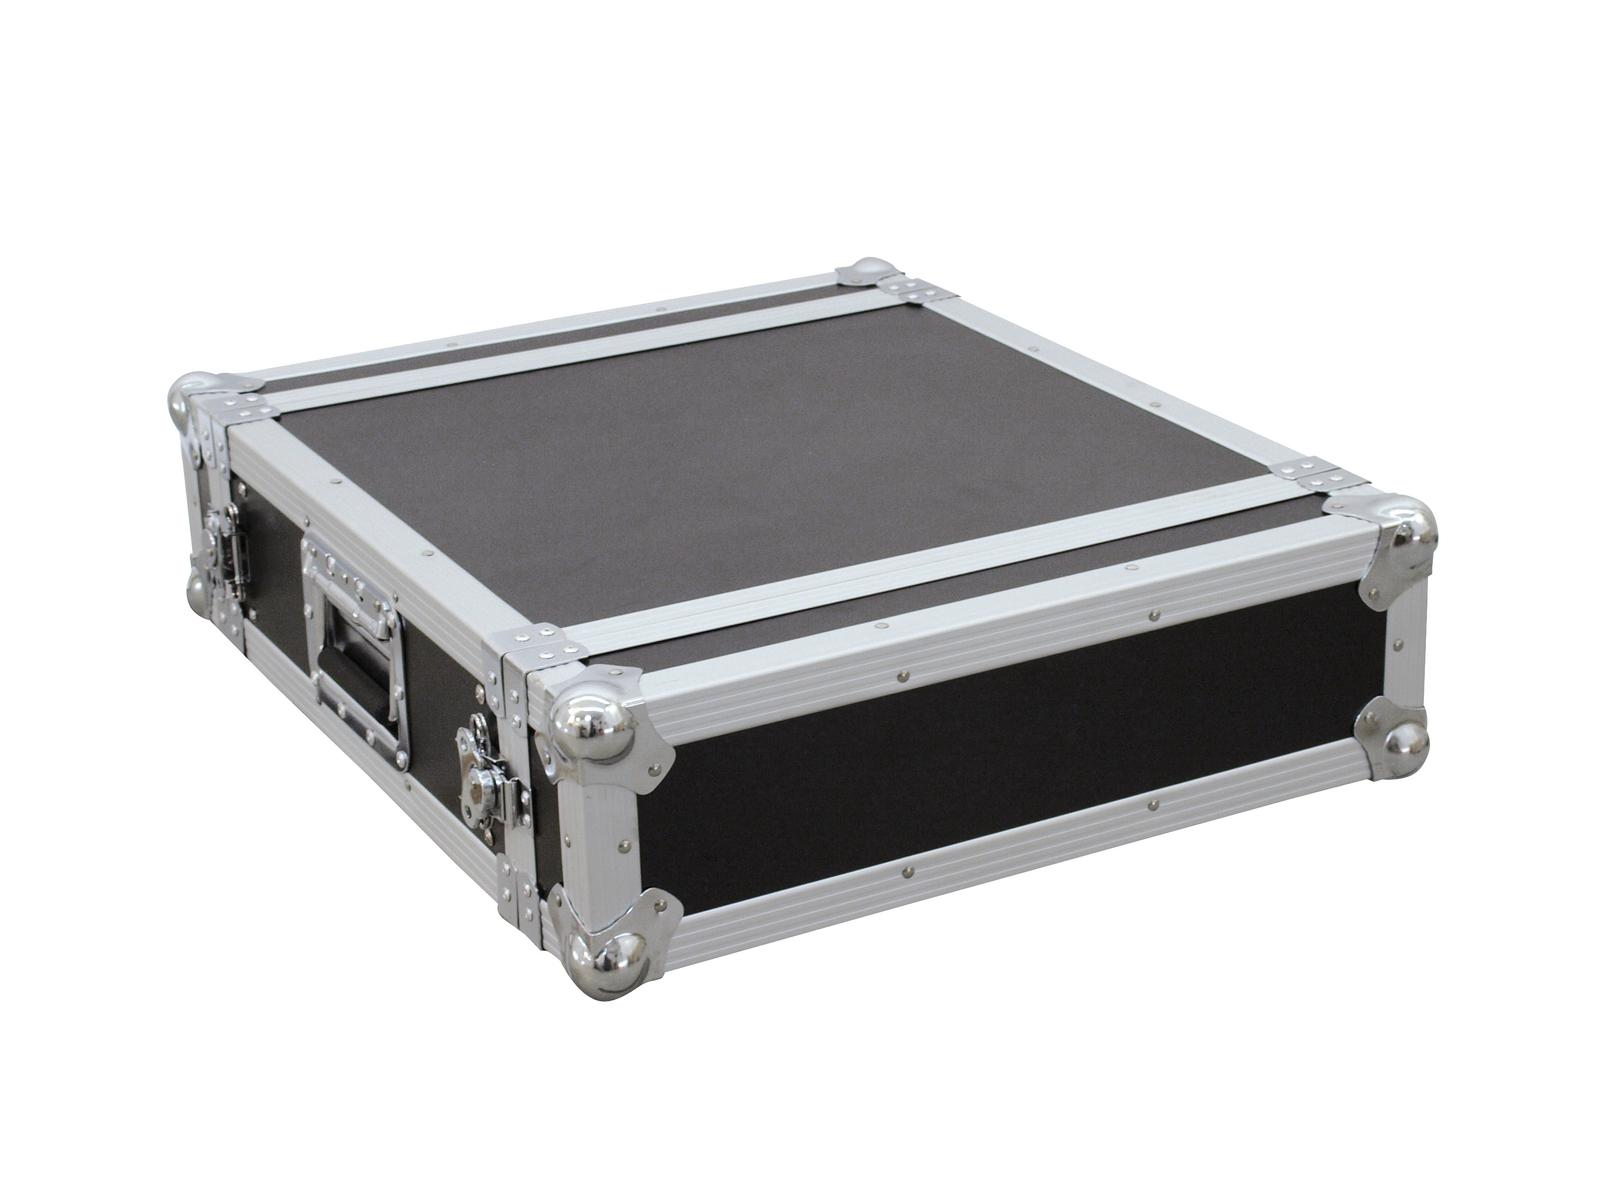 Flight case Rack Per il trasporto Di amplificatori PR-1, 3U, 47cm ROADINGER